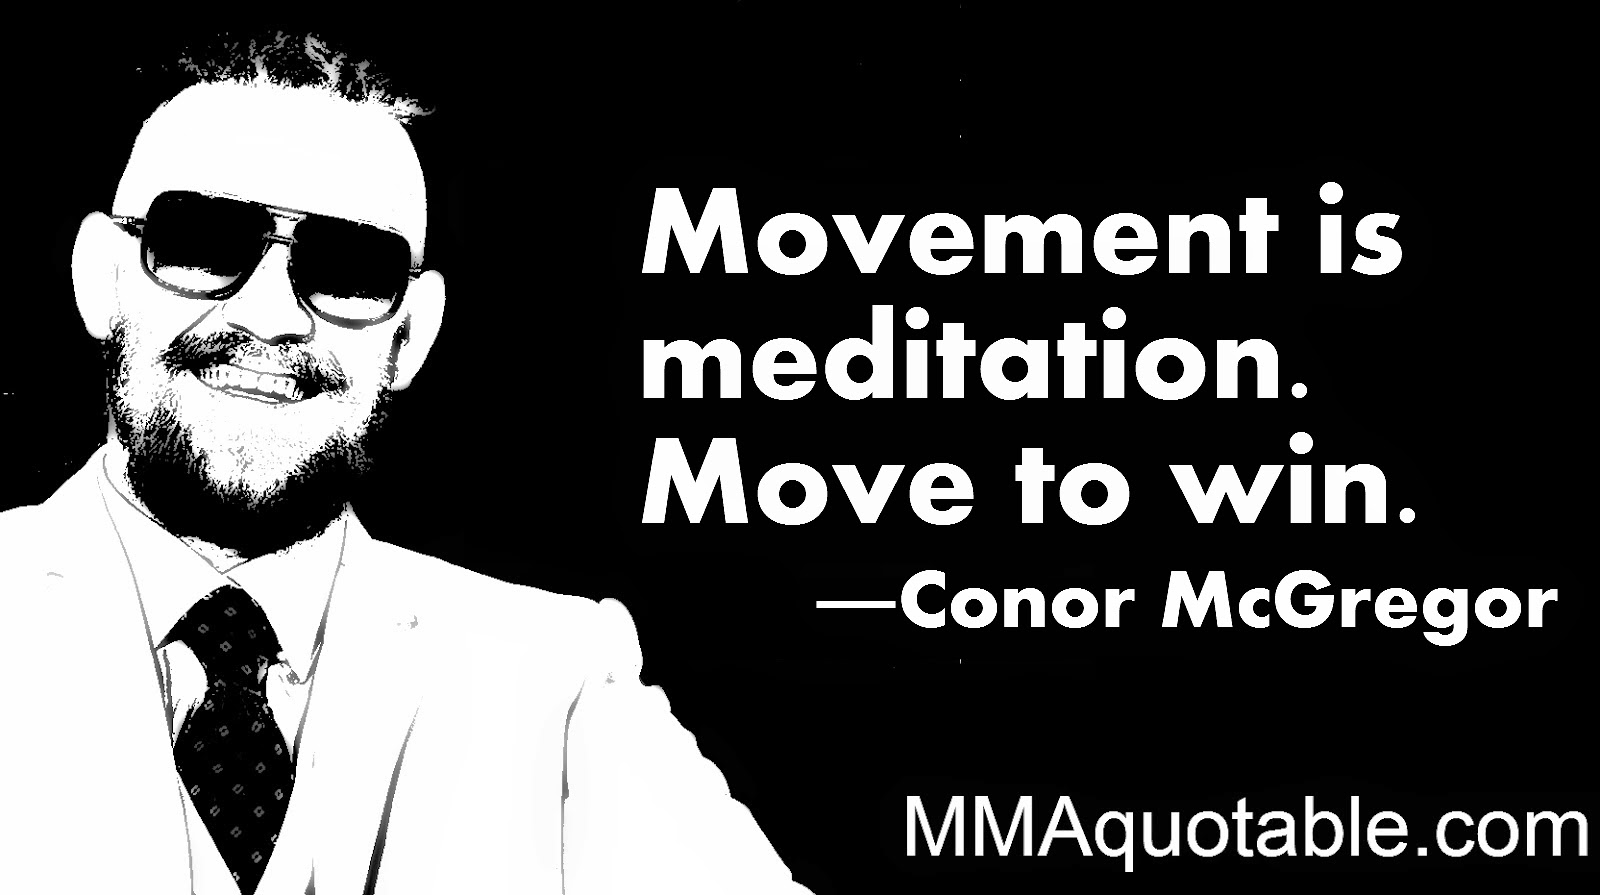 Movement Quotes Motivational Quotes With Pictures Many Mma & Ufc Movement Is